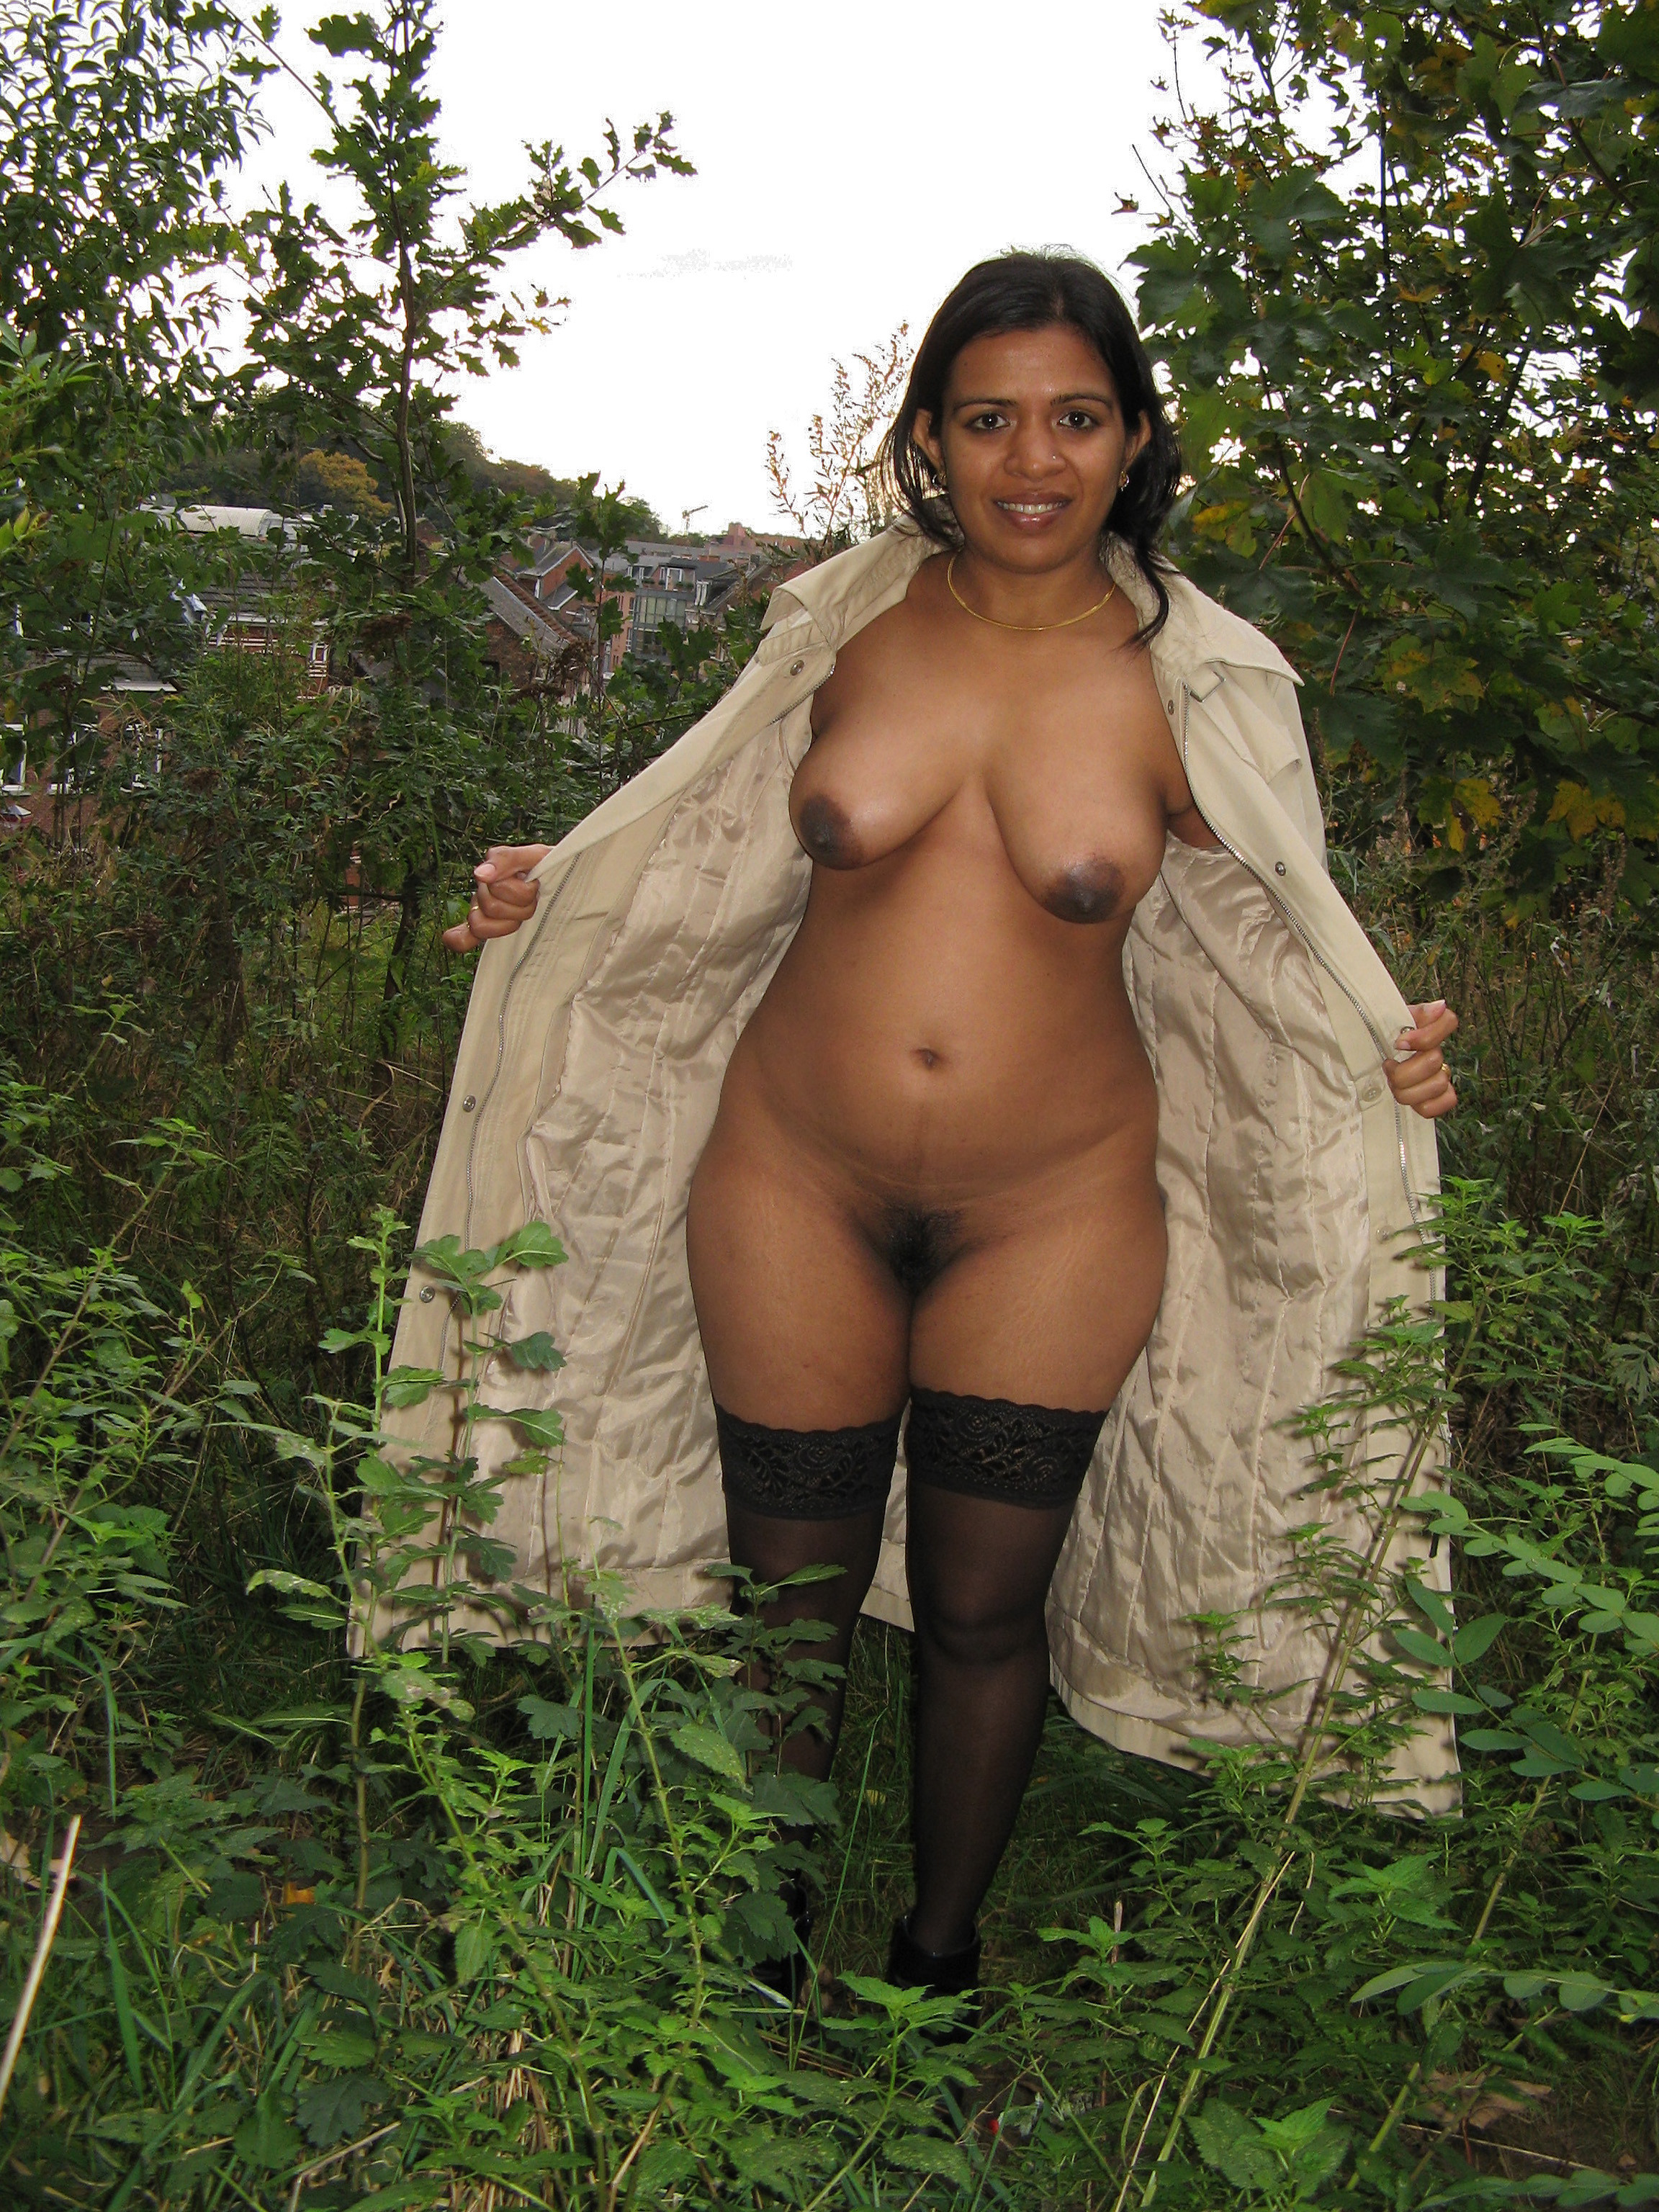 Naked indians photos in hd adult gallery